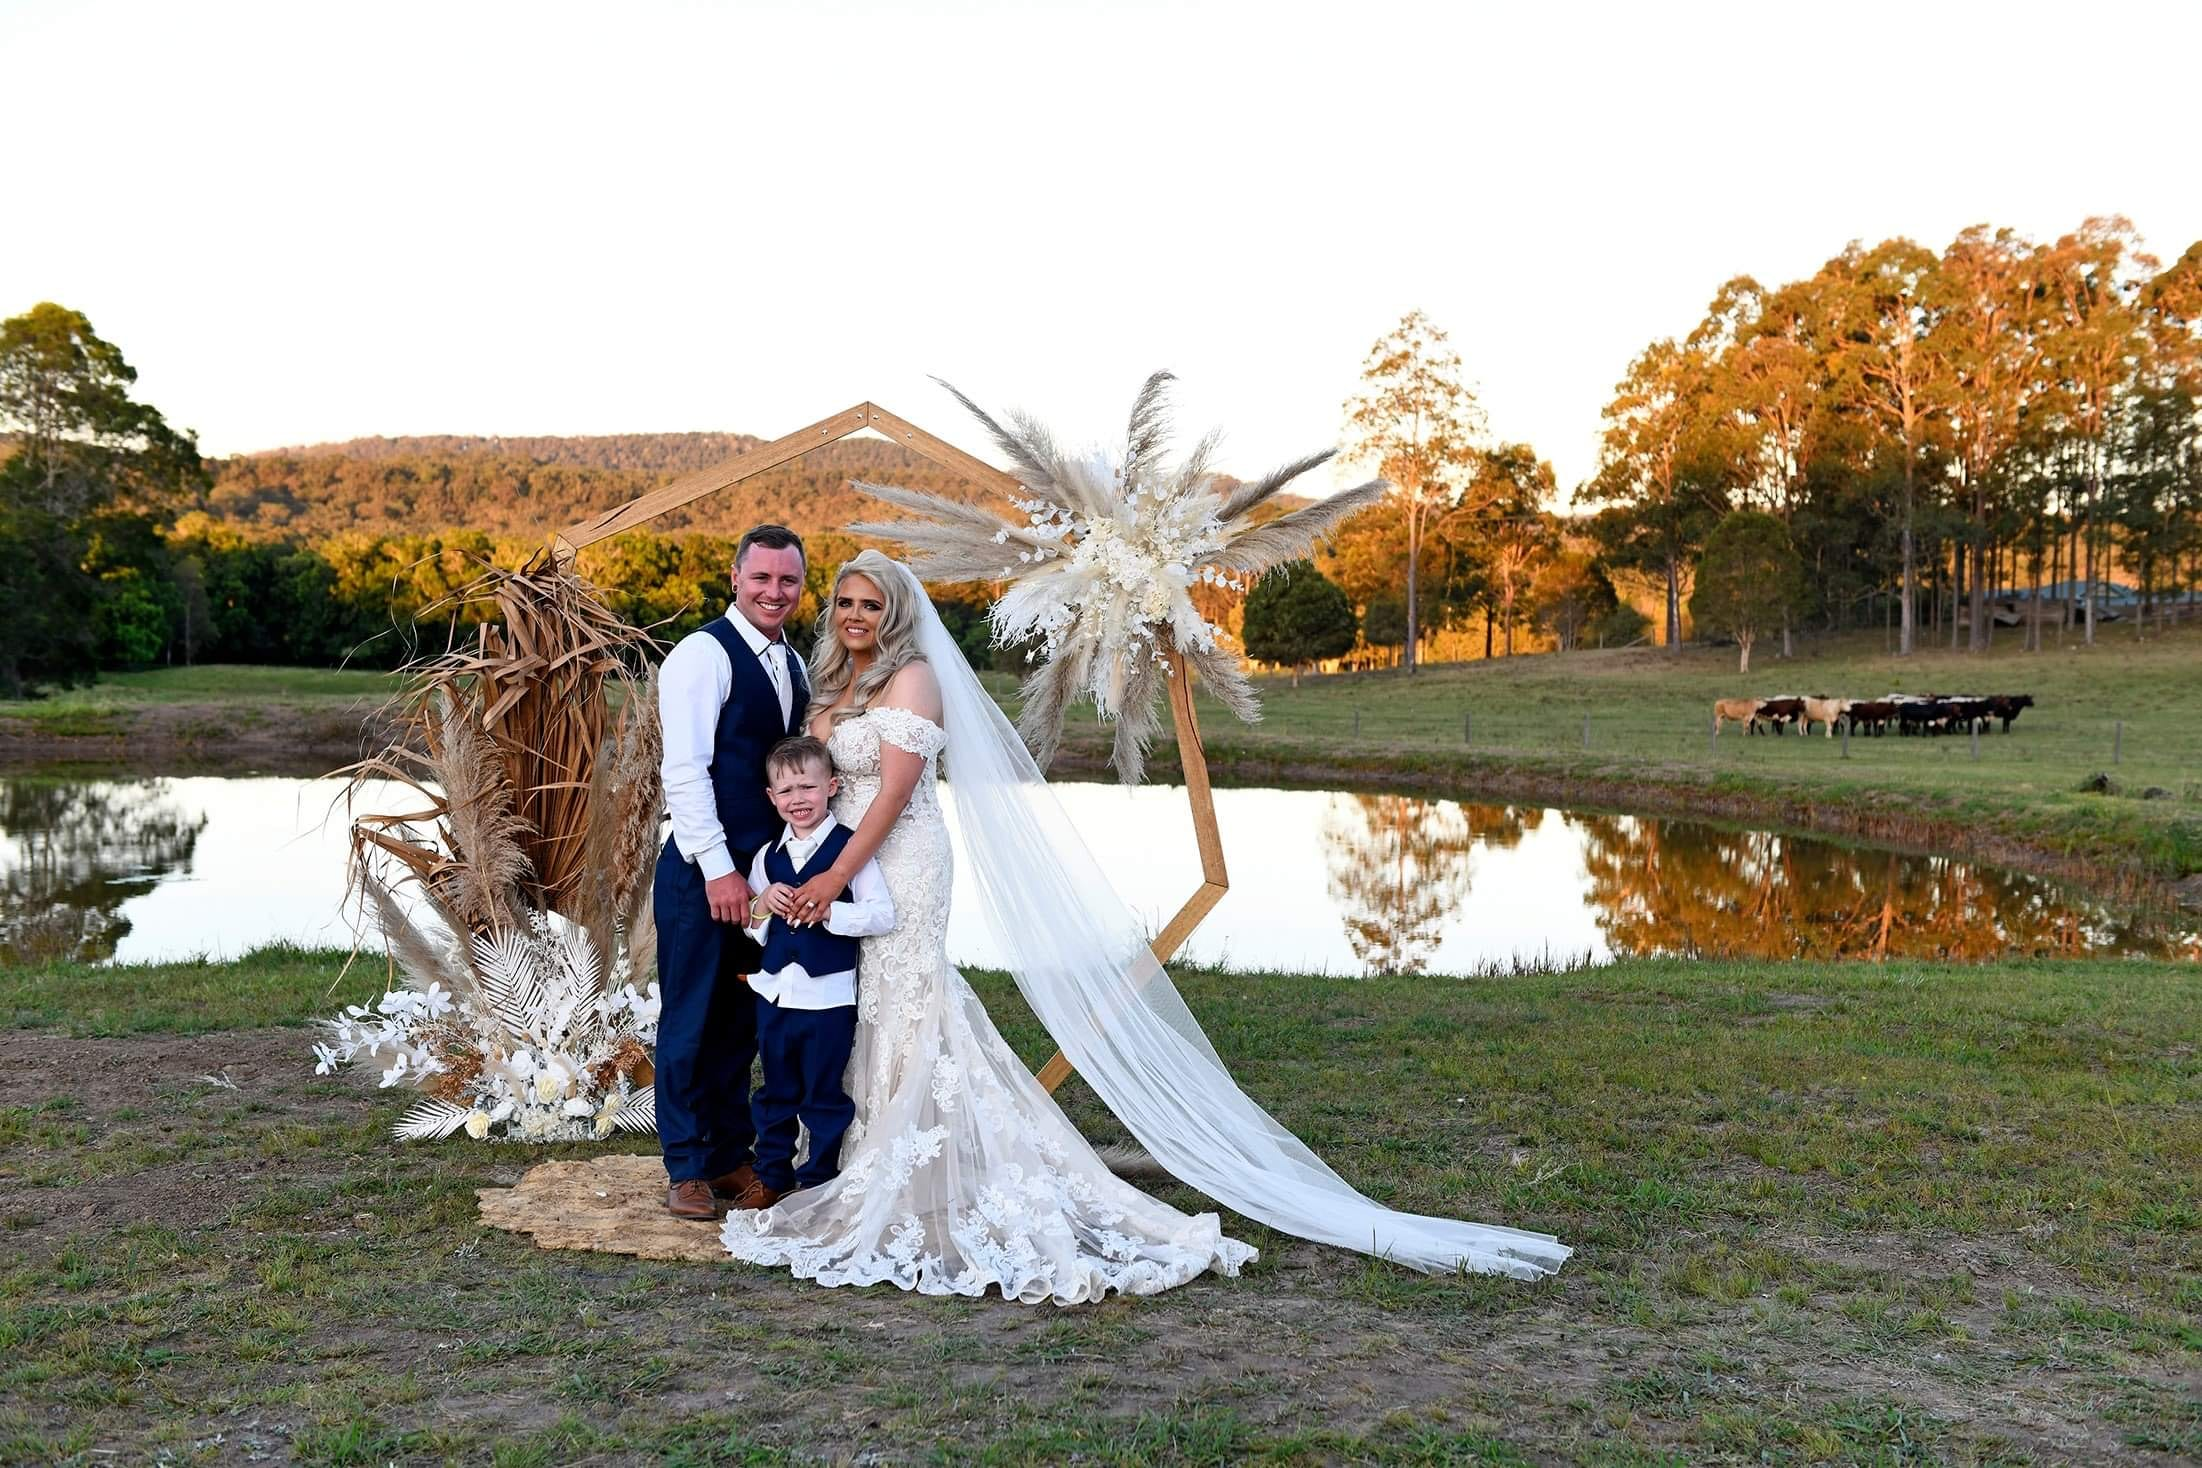 Weddings don't always need to be indoors! Talk to Wedfest about setting up the festival feel wedding.